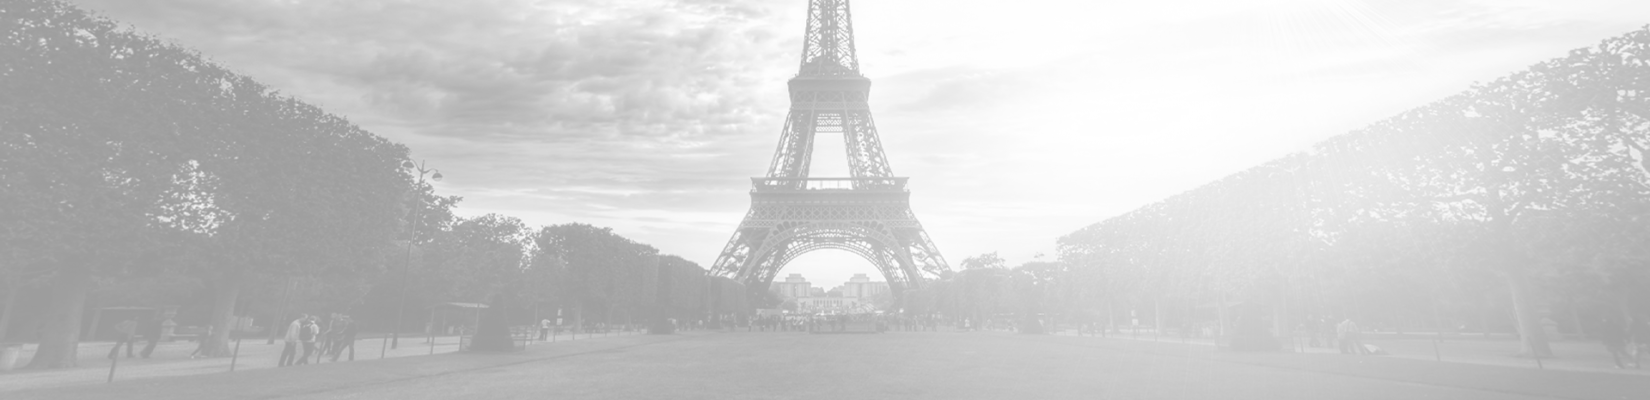 Transparent-Gray Background of Eiffel Tower in Paris, France - BluJay Customs Management and Trade Compliance